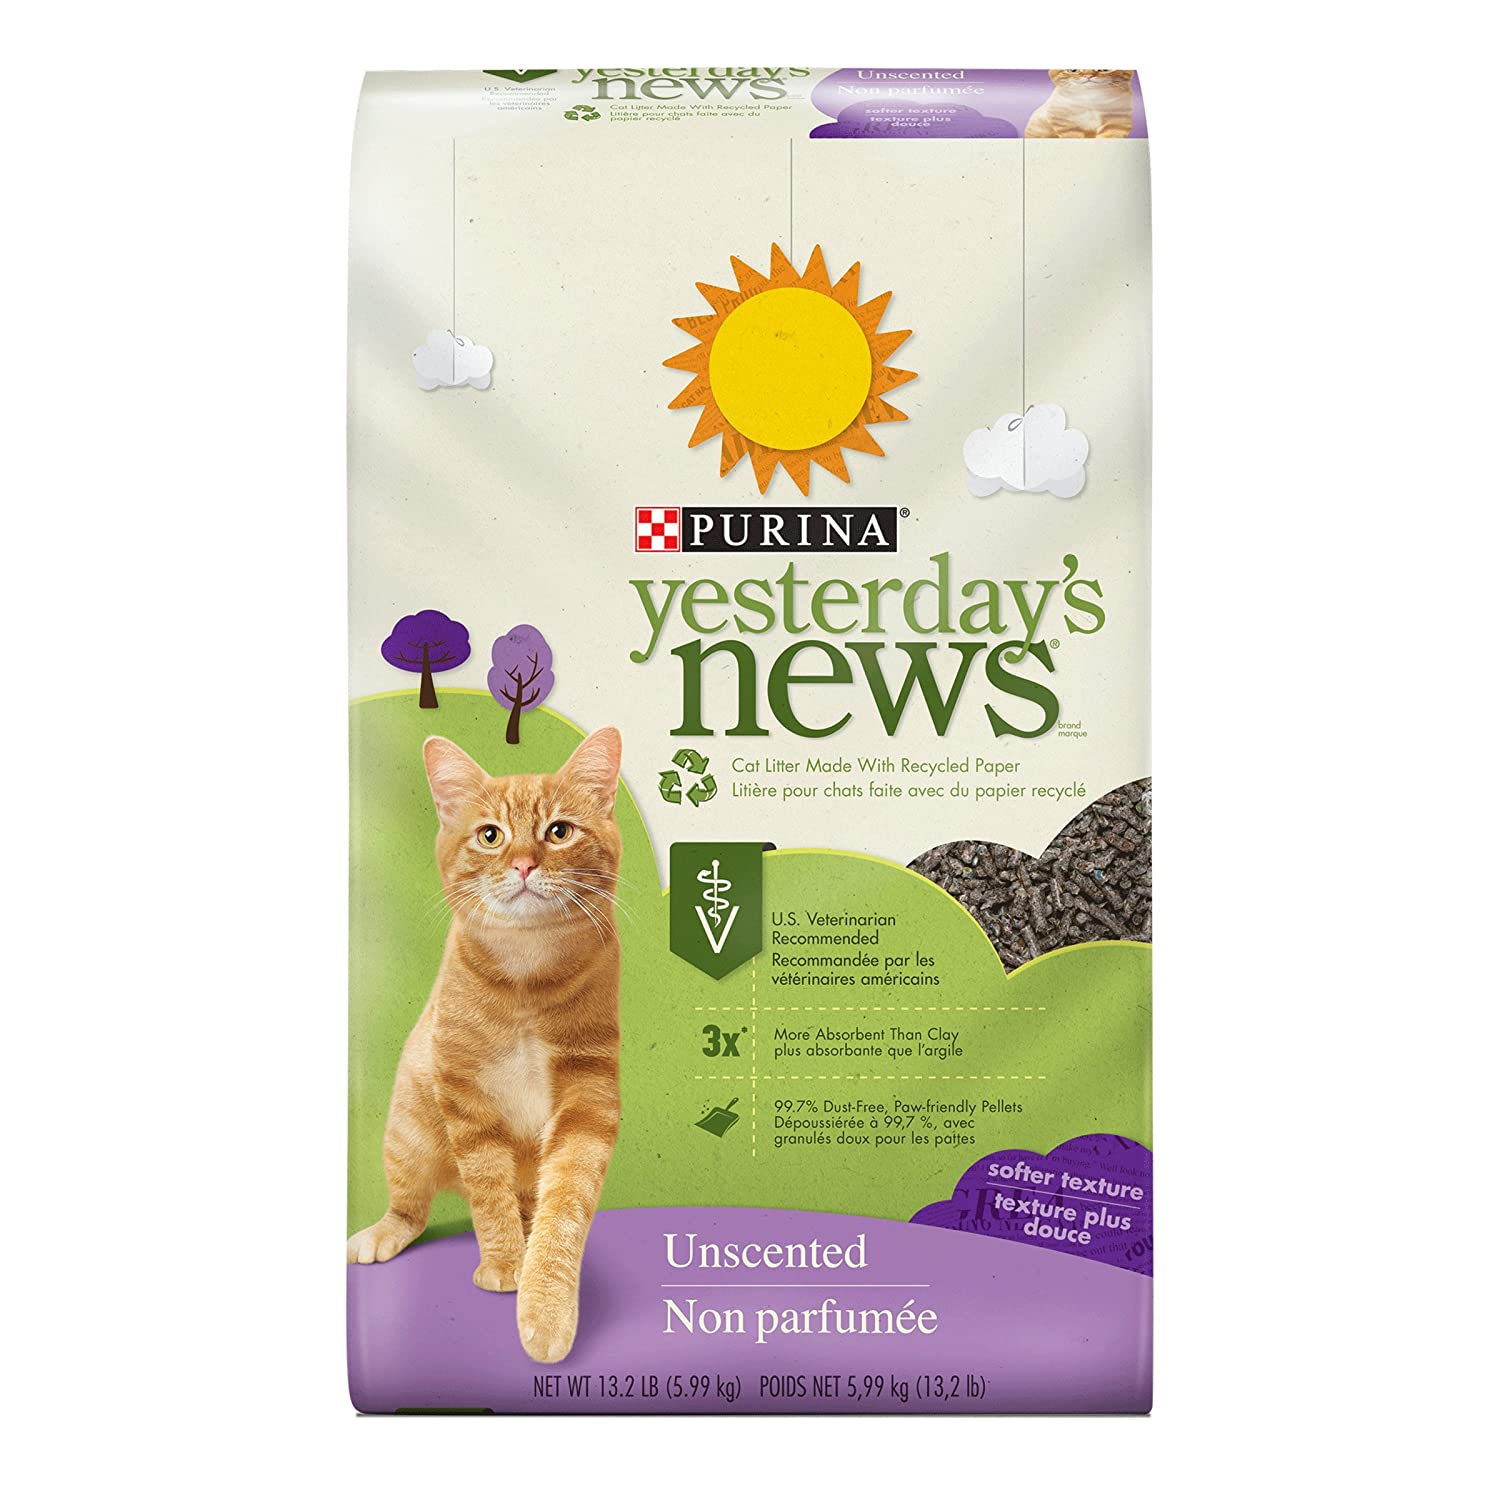 Purina Yesterday's News Non Clumping Paper Cat Litter, Softer Texture Unscented Cat Litter - 13.2 lb. Bag